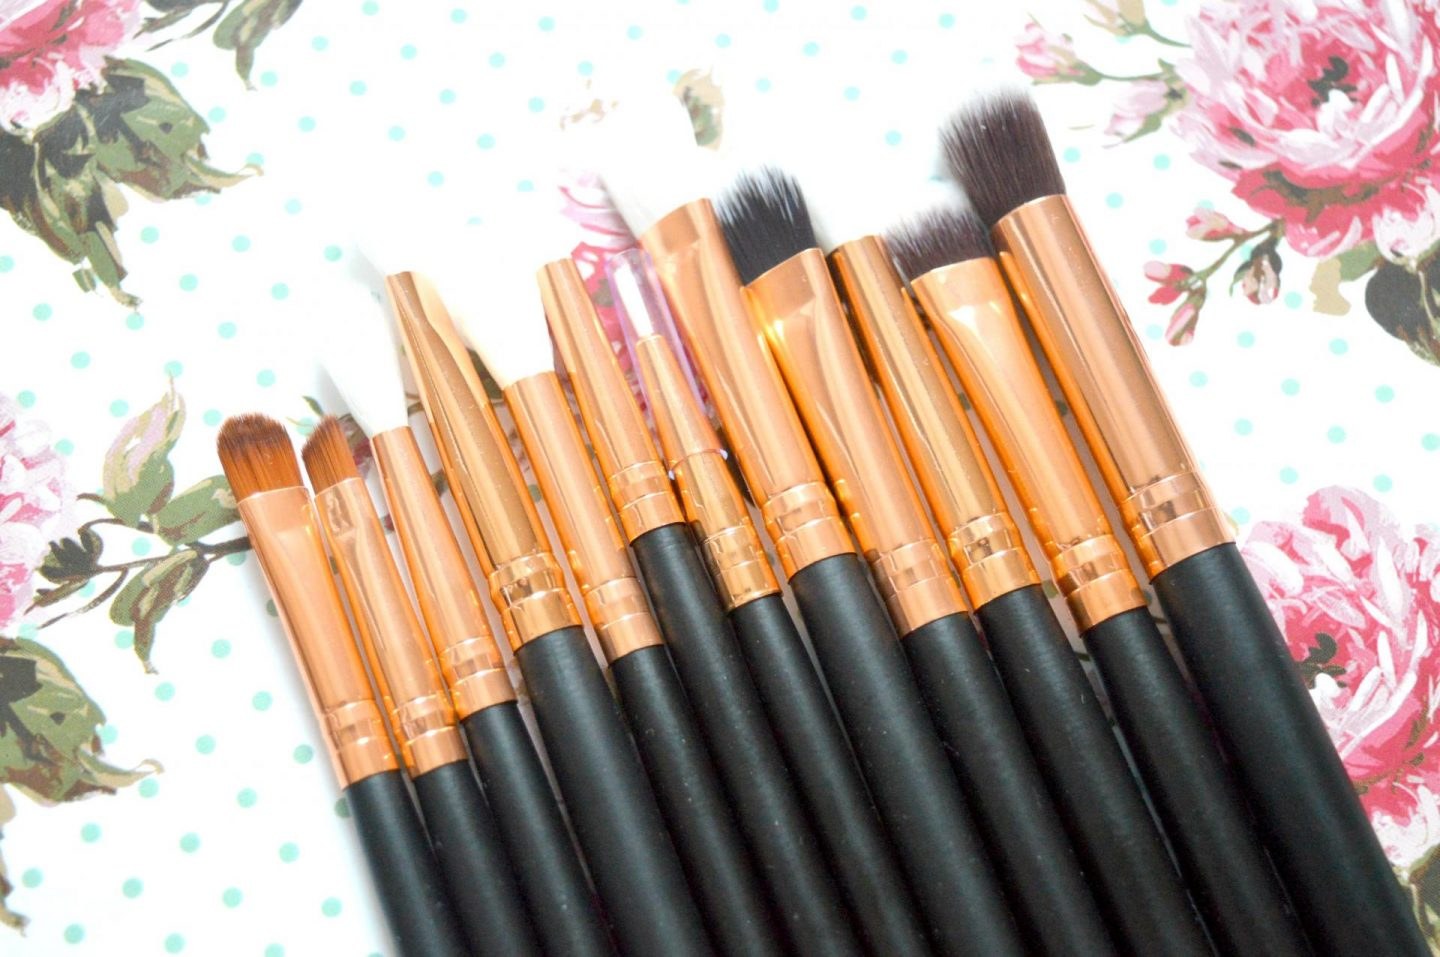 The 12 Piece Professional Makeup Brush Set That Cost Me Just £3.00